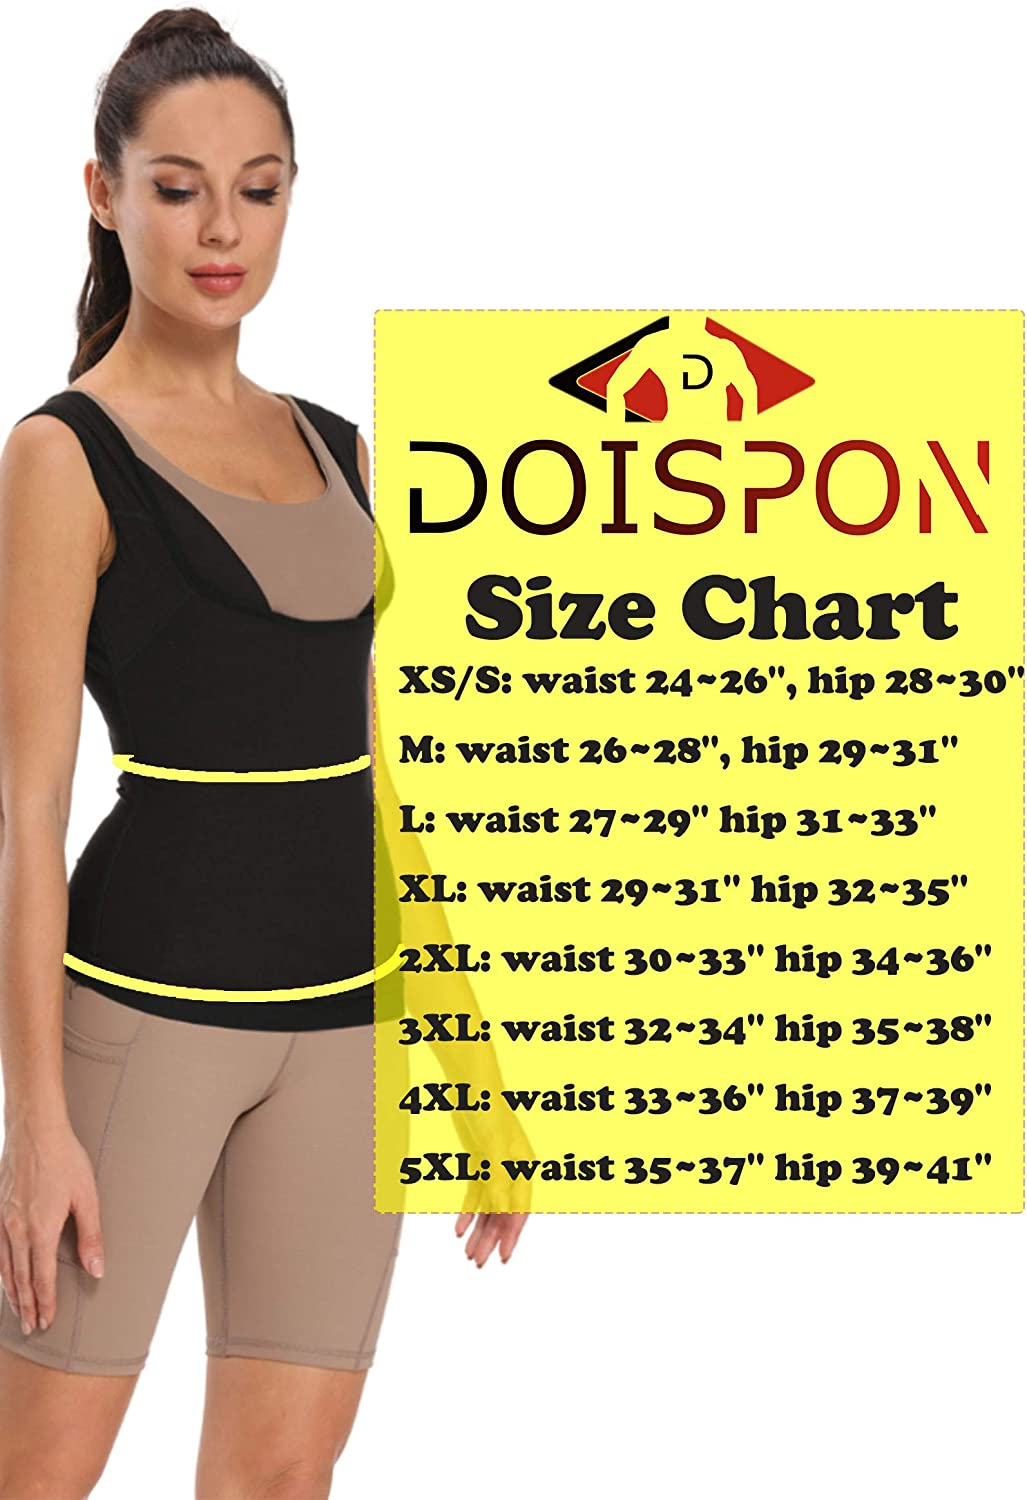 DOISPON Women Sweat Tank Top 8 Sizes Sauna Vest Compression Outfit Waist Trainer for Everyday Wear Home Workout